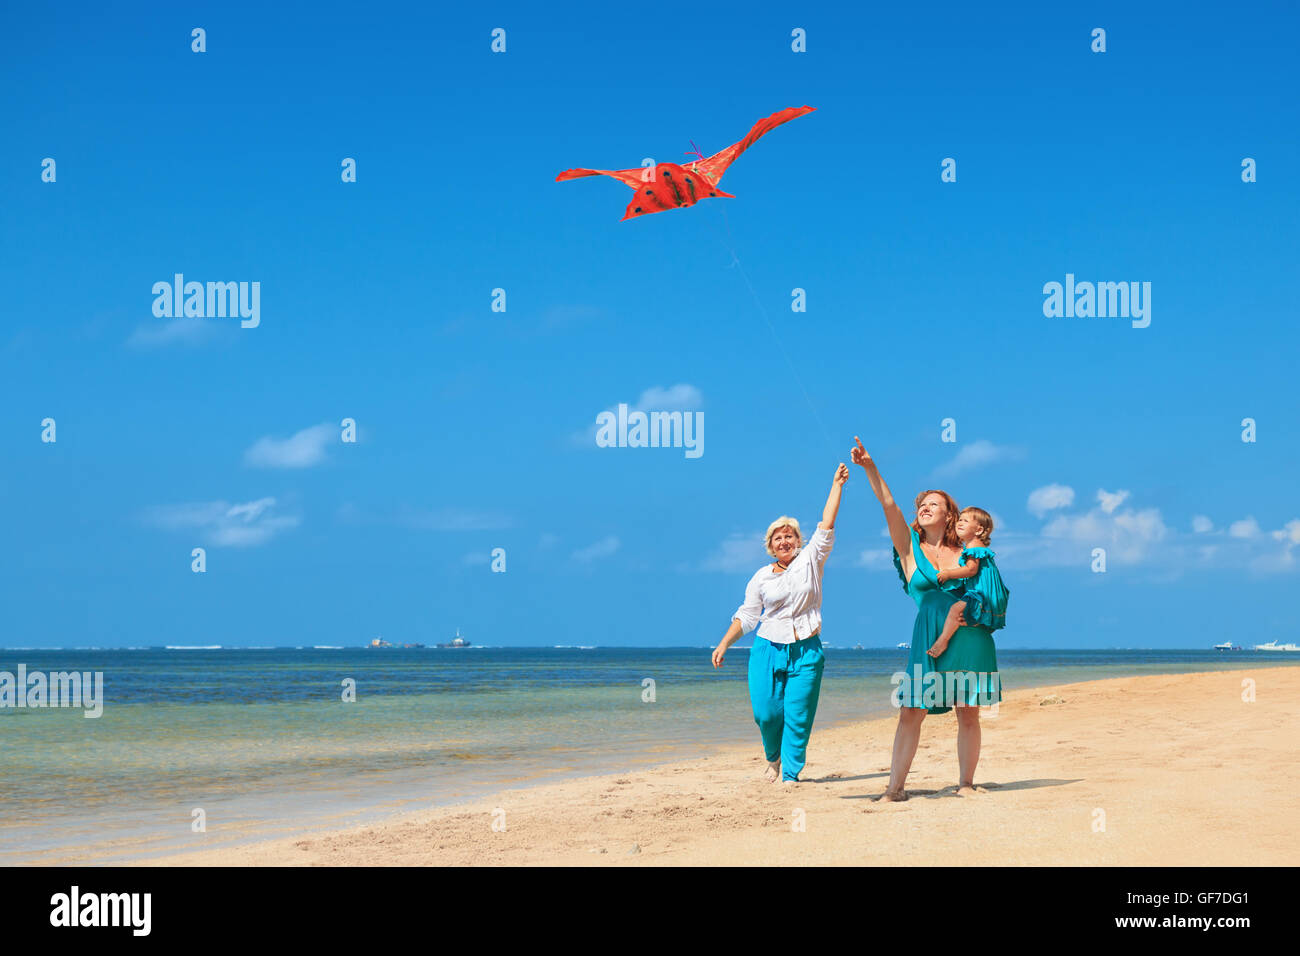 Happy family has fun on beach - grandmother, mother and baby girl walk along ocean surf. Senior woman runs with - Stock Image